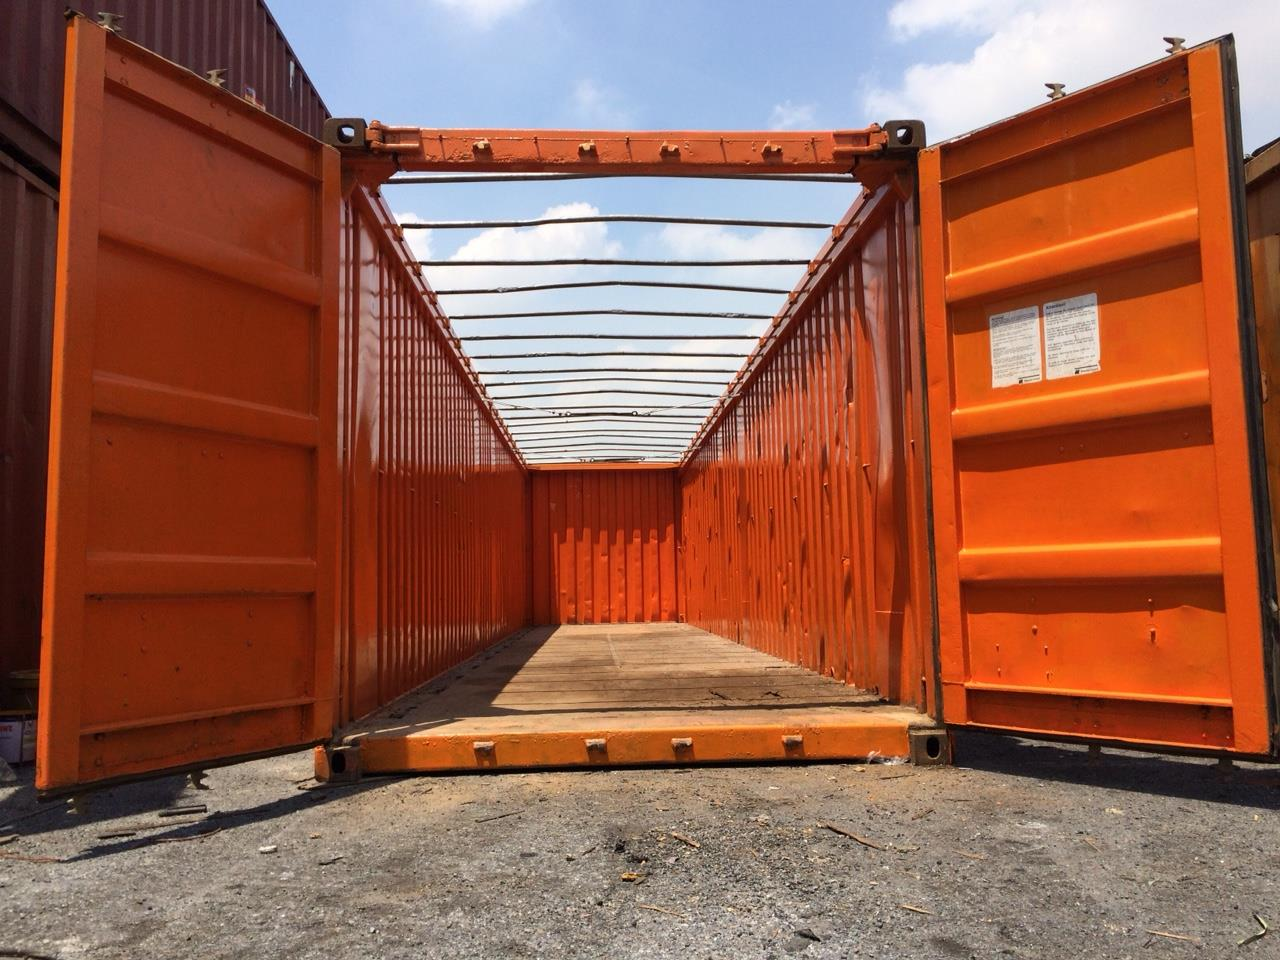 Container chuyên dụng 210802